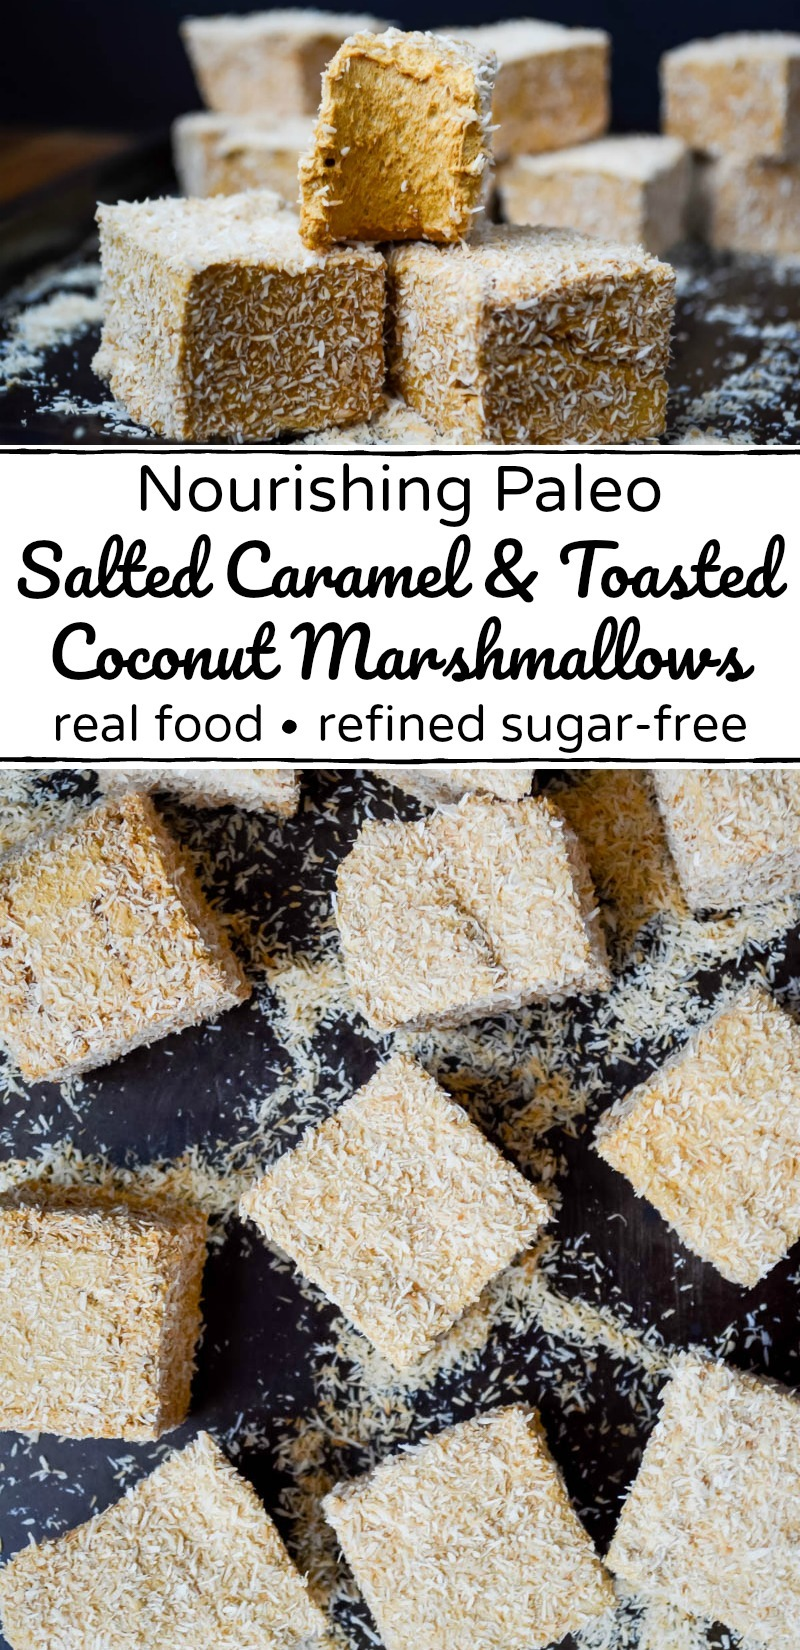 collage of 2 images of paleo salted caramel and toasted coconut marshmallows with white text overlay between the images